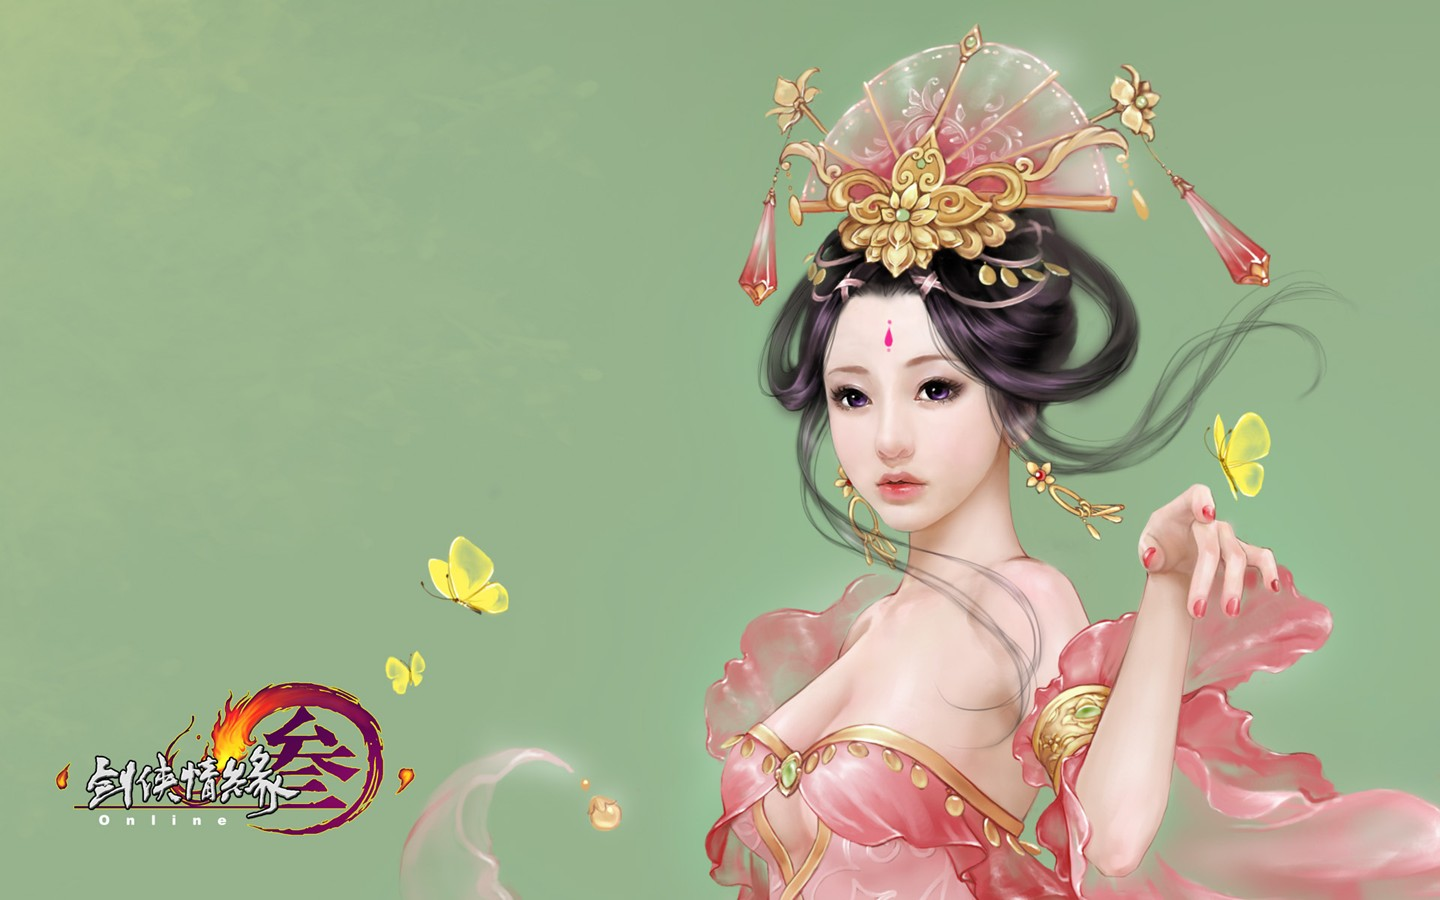 D martial arts online game wallpaper of JX 30244